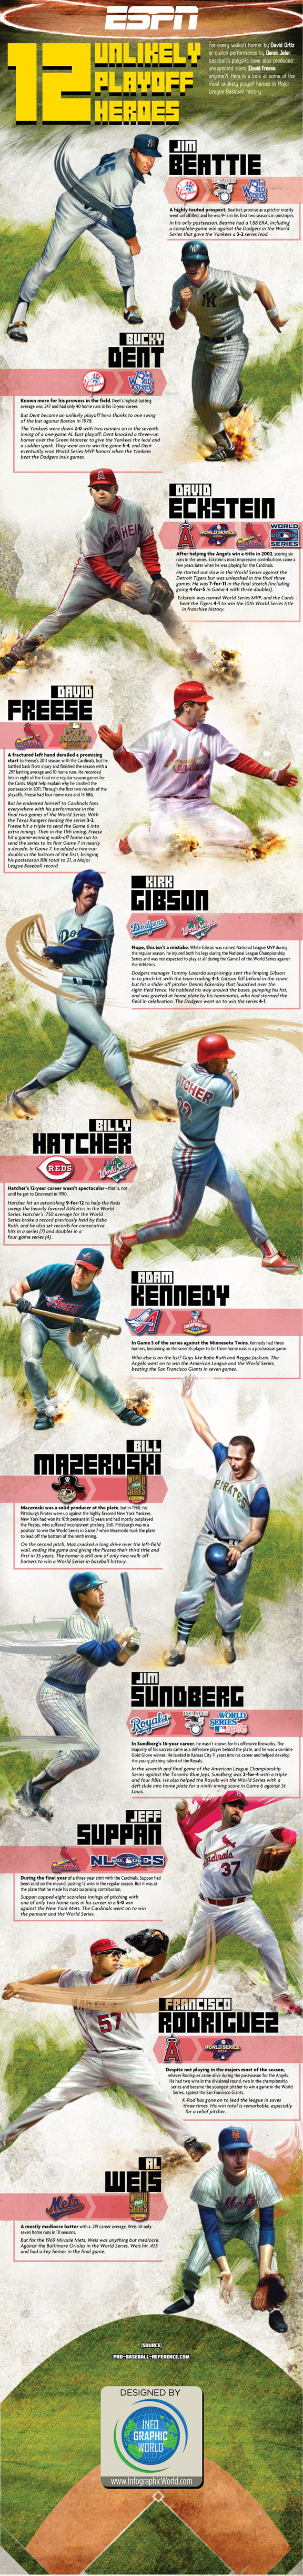 Unlikely MLB playoffs heroes infographic